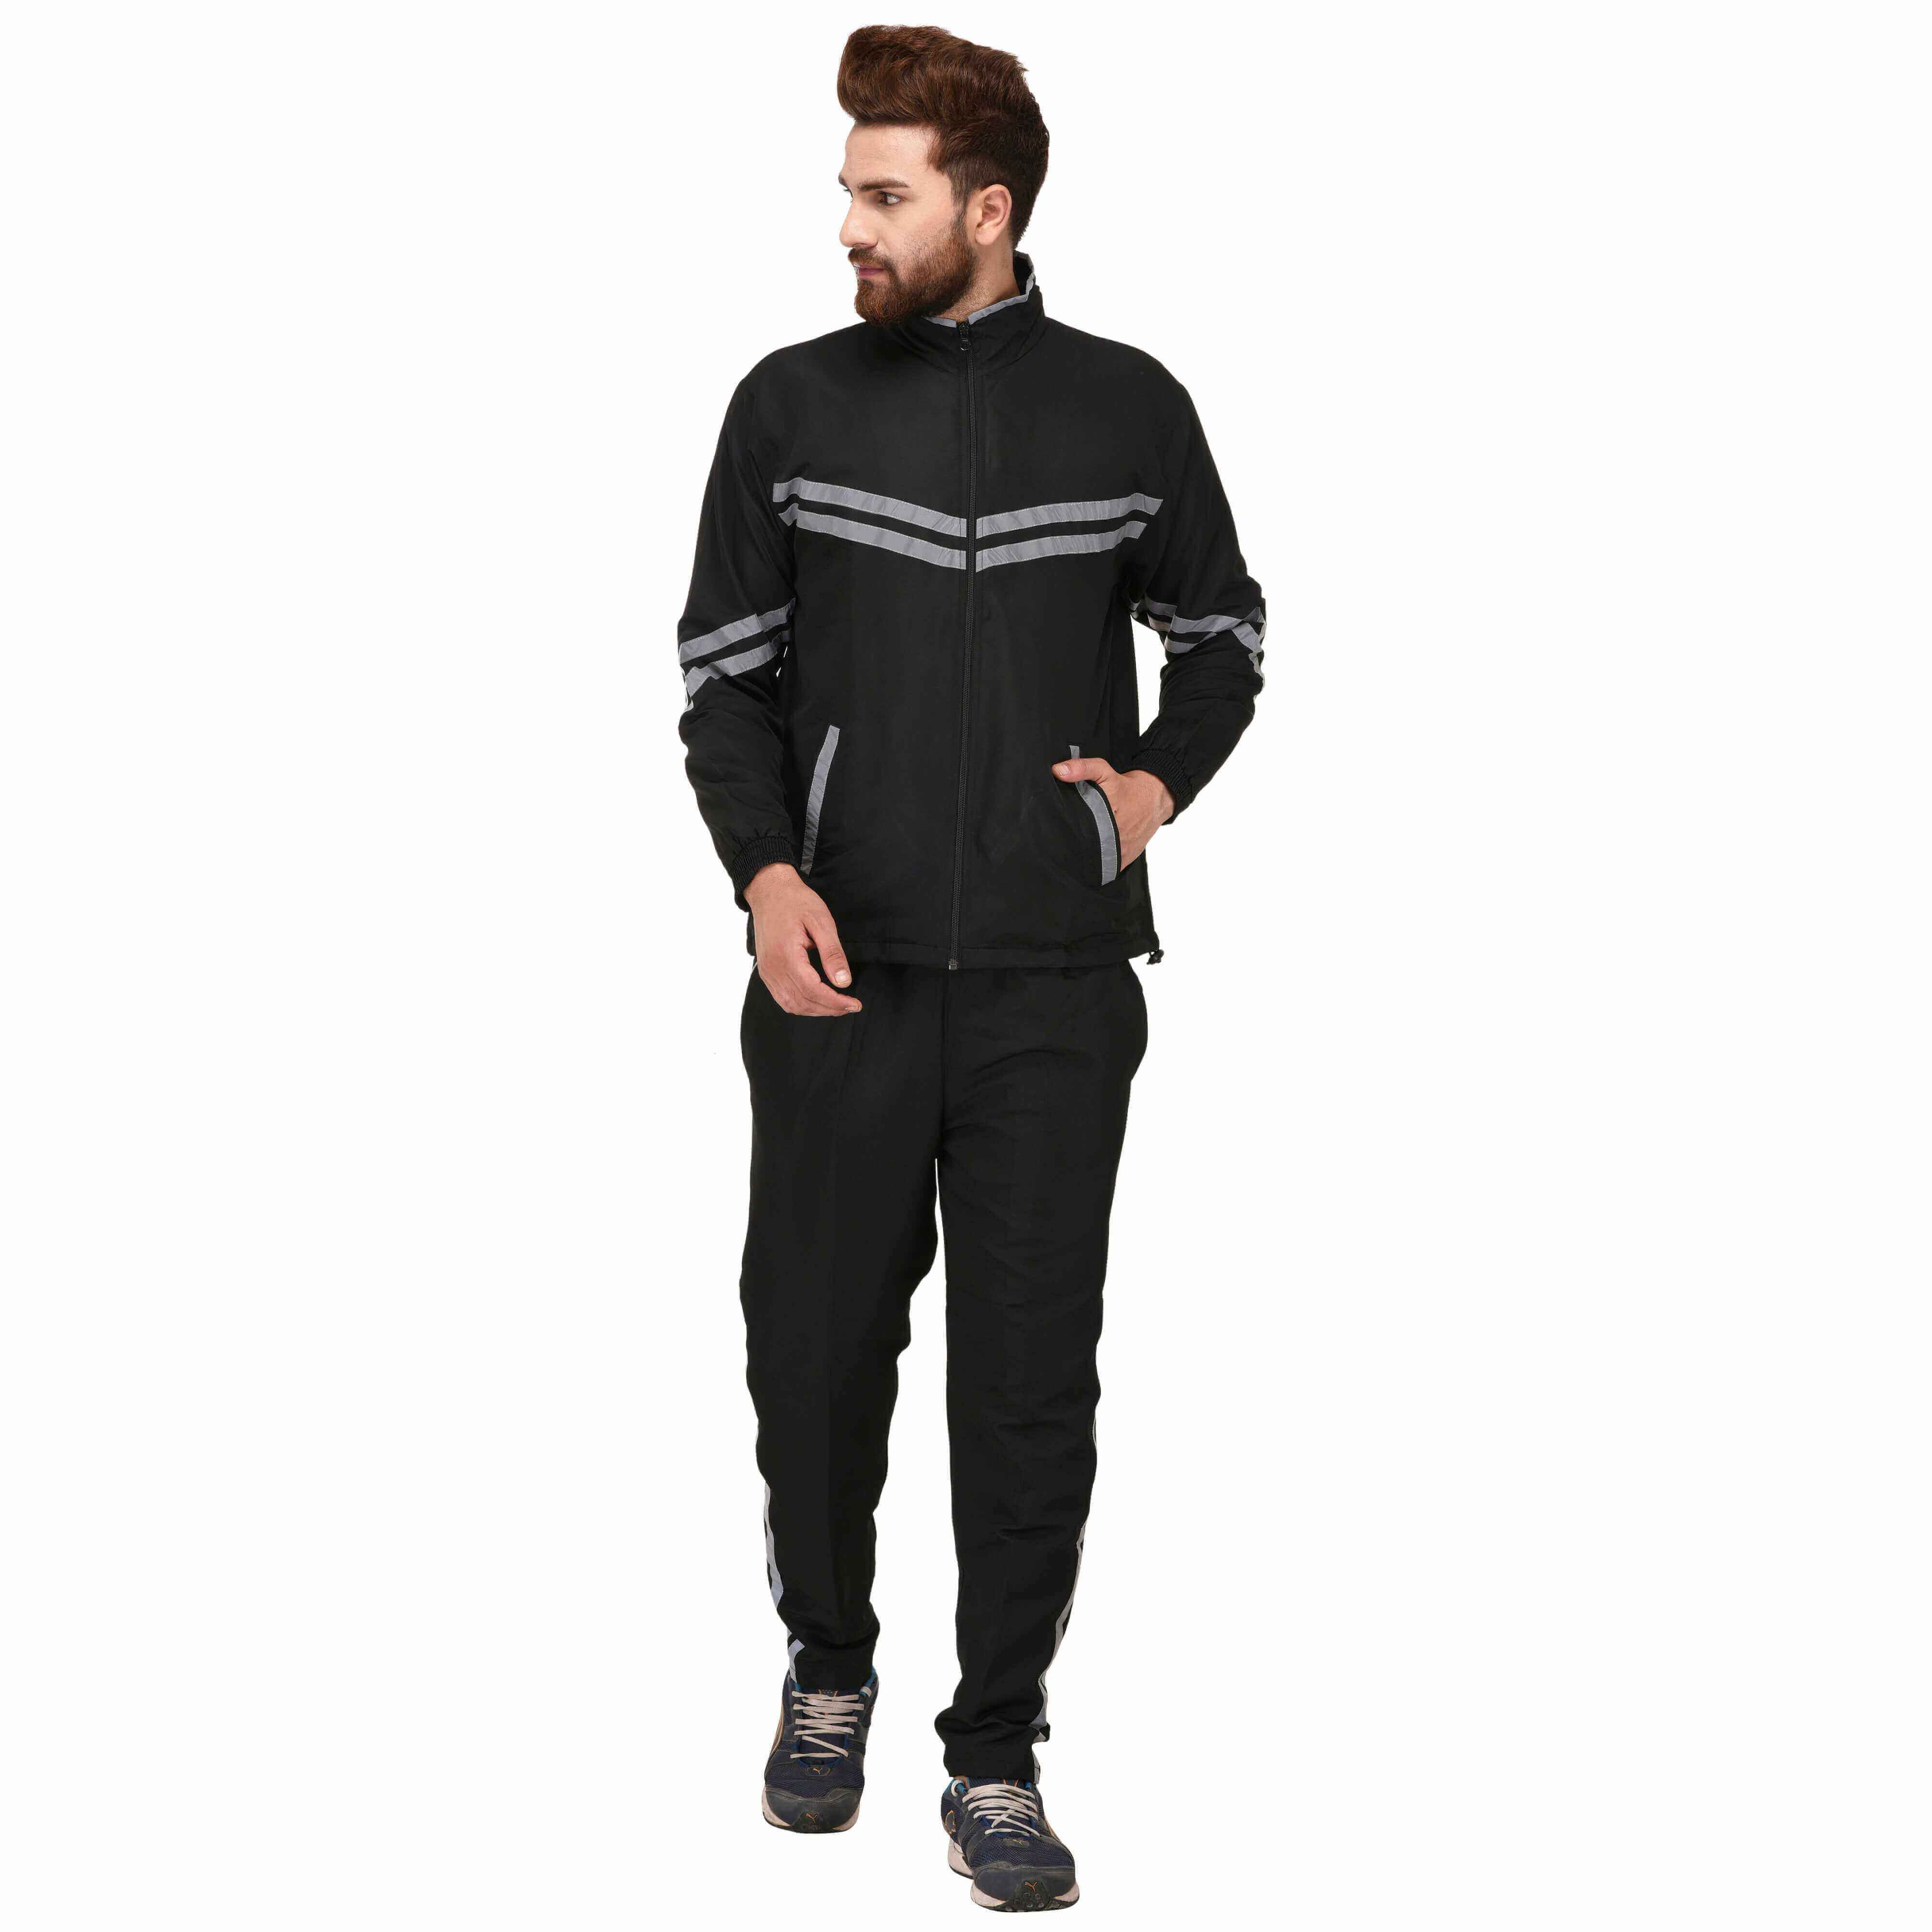 Grey Tracksuit Manufacturers in Solapur